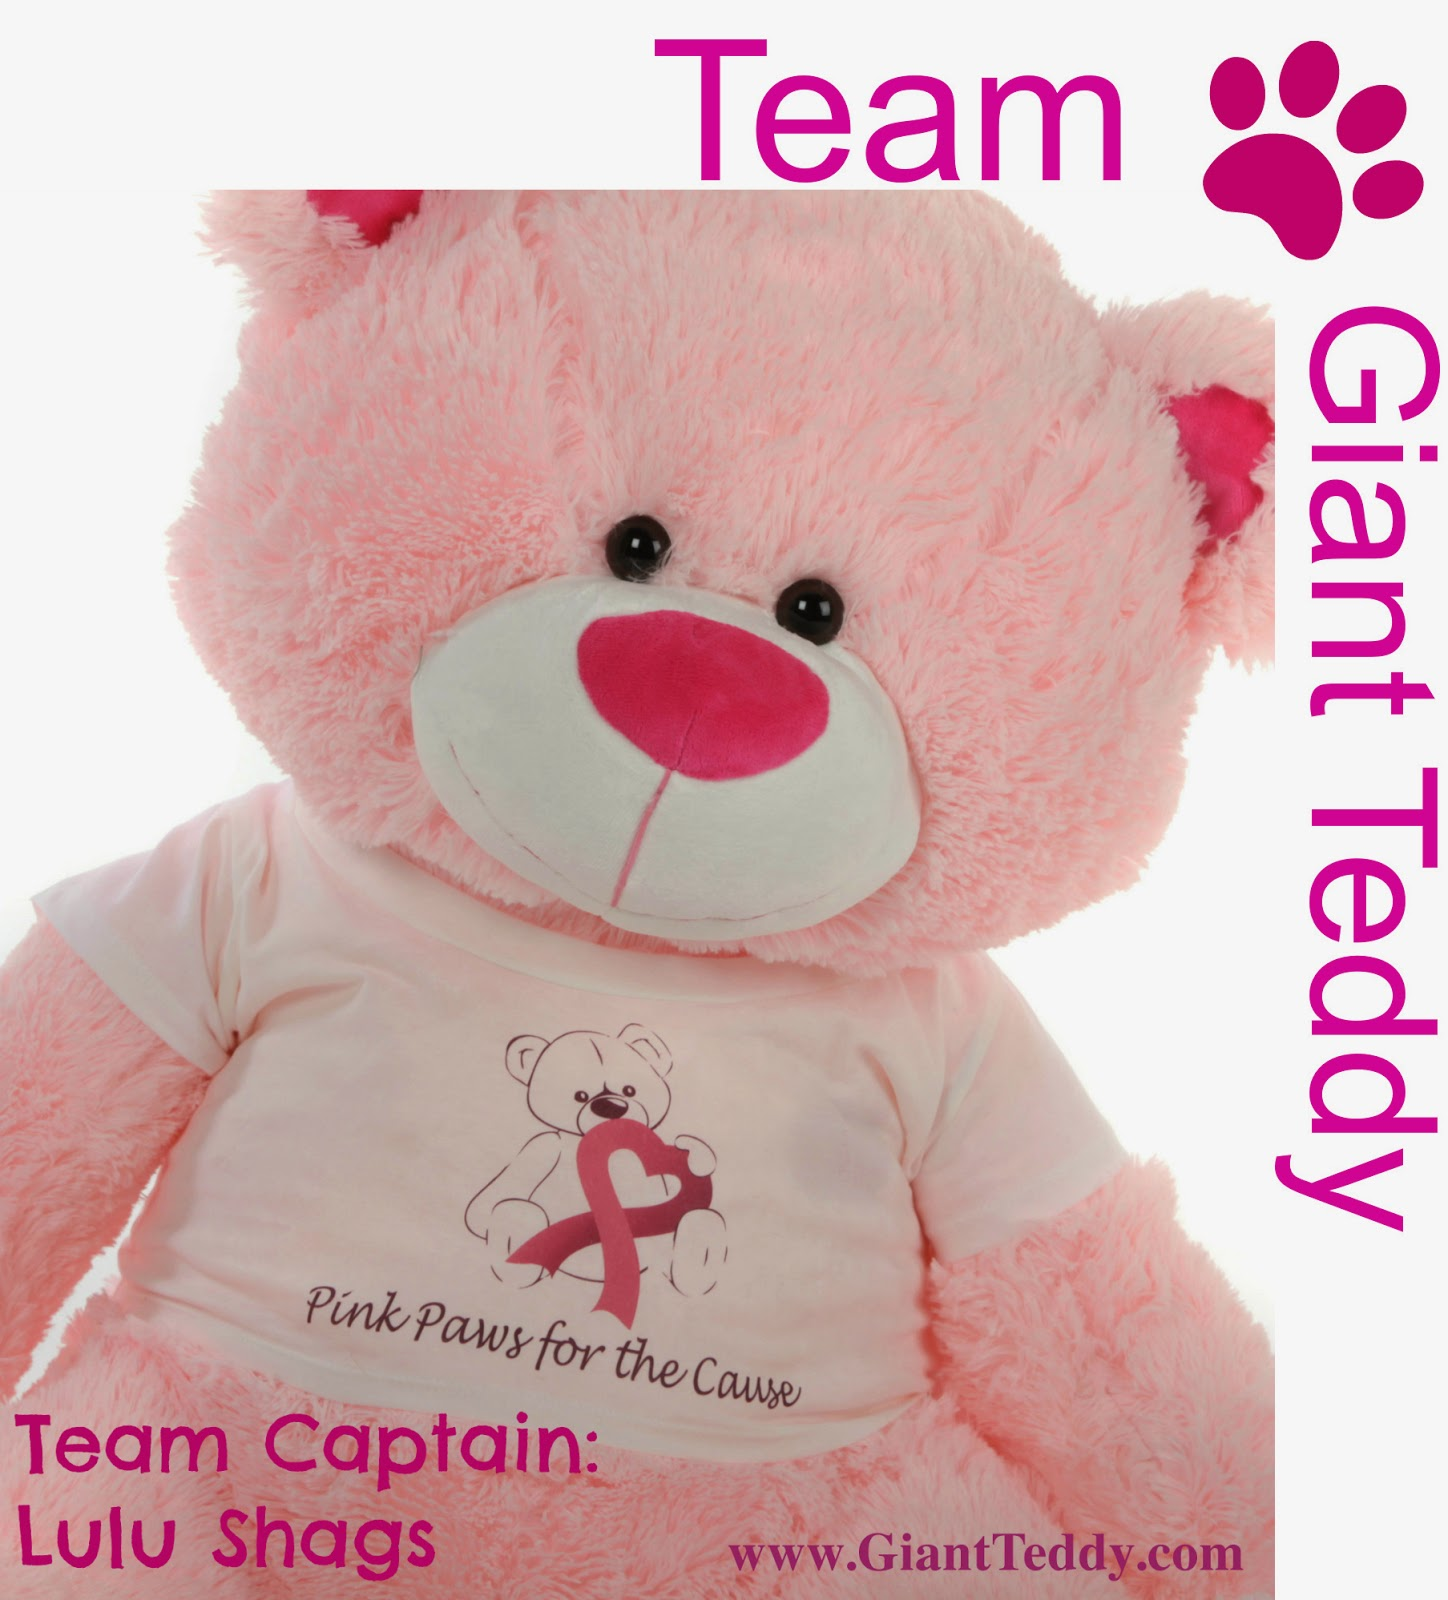 Giant Teddy's Lulu Shags is our Team Captain in the Komen Race for the Cure